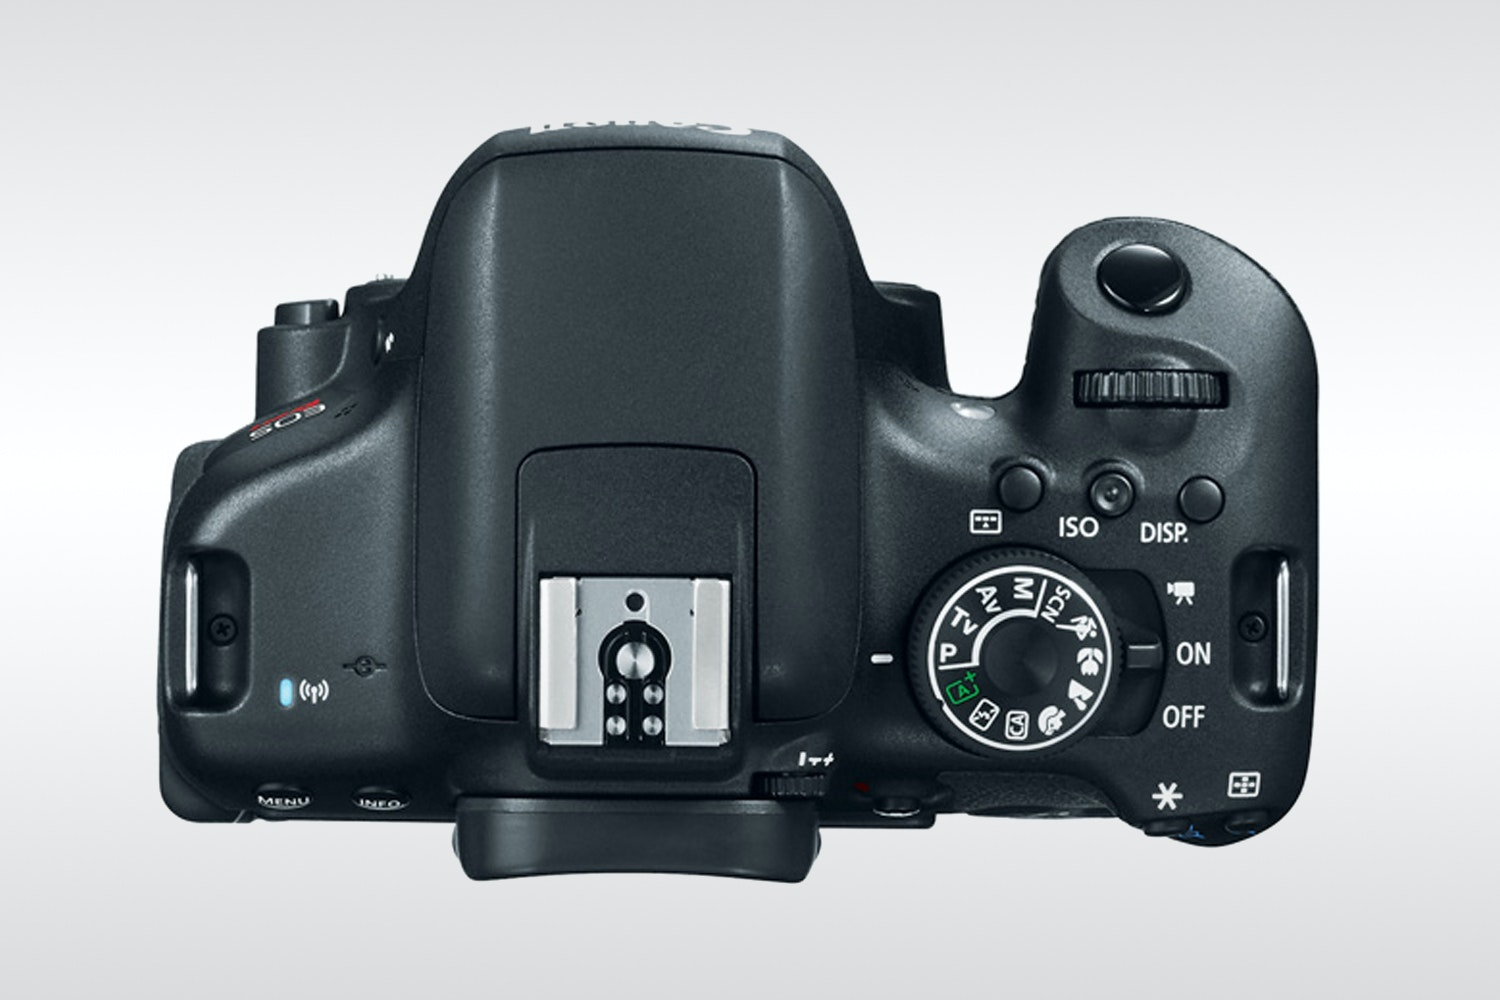 Canon EOS Rebel T6i with EF-S 18-55mm IS STM Lens